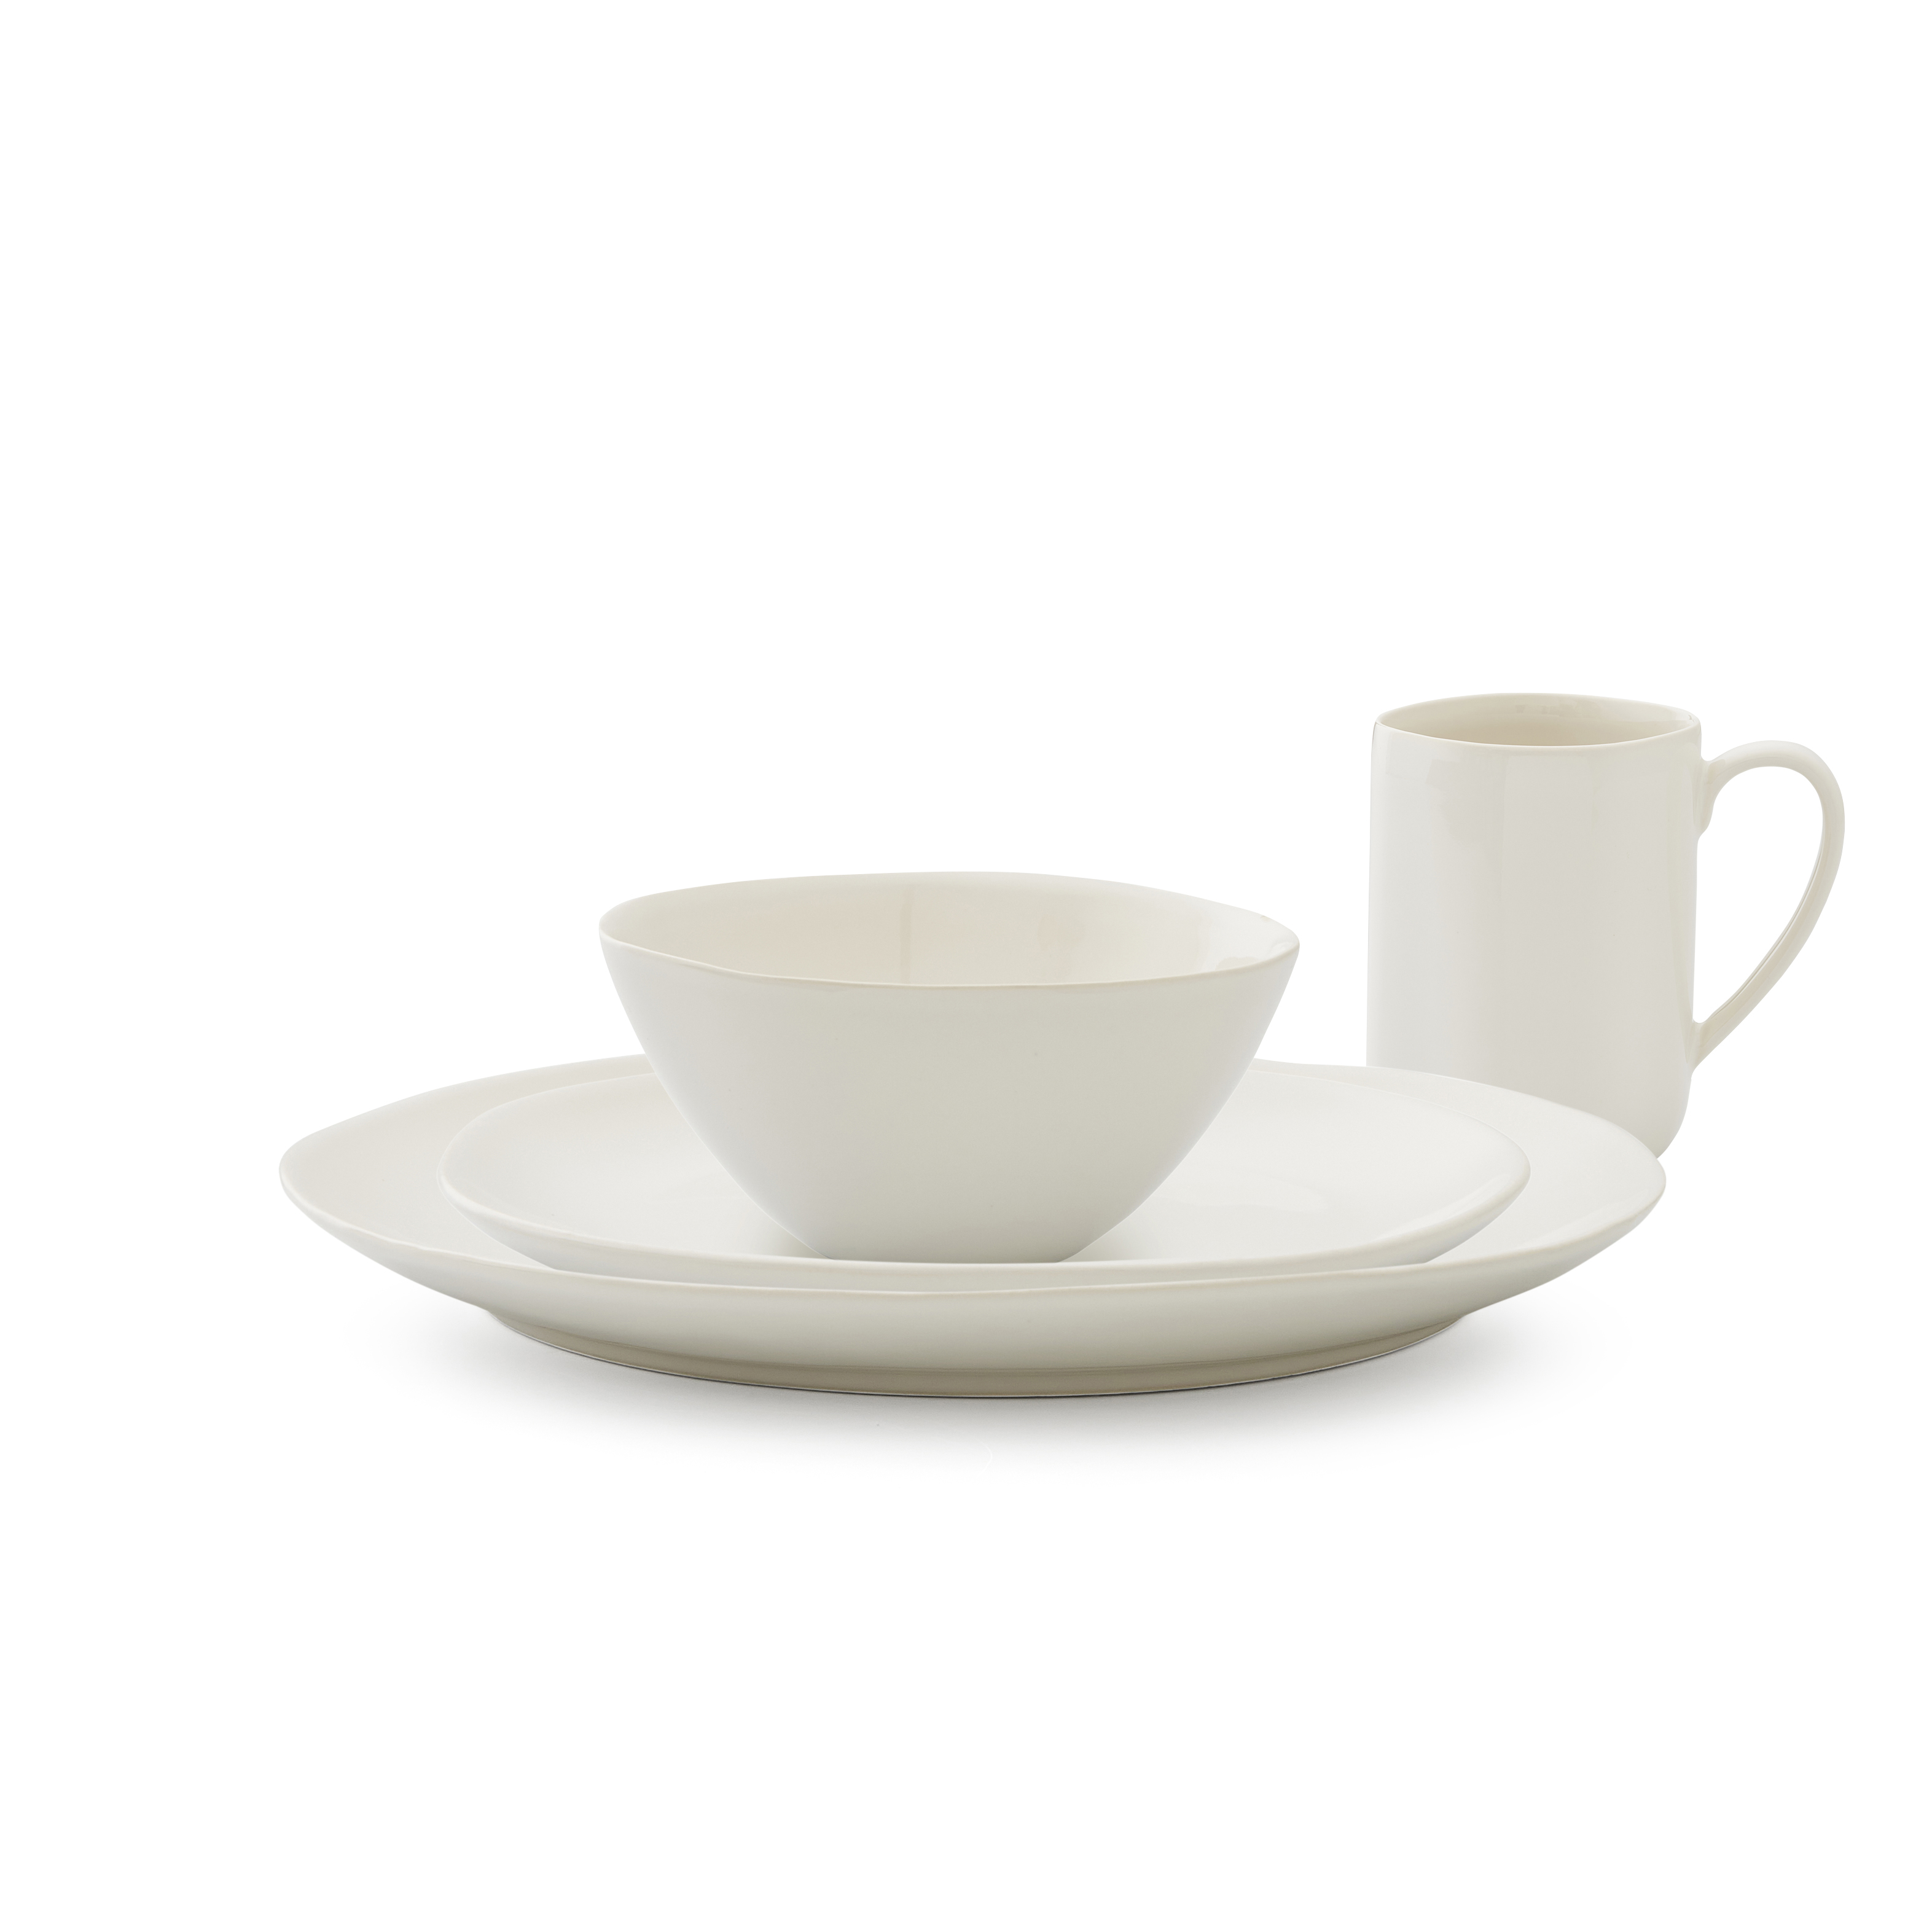 Sophie Conran Arbor 4 Piece Place Setting- Creamy White image number 0